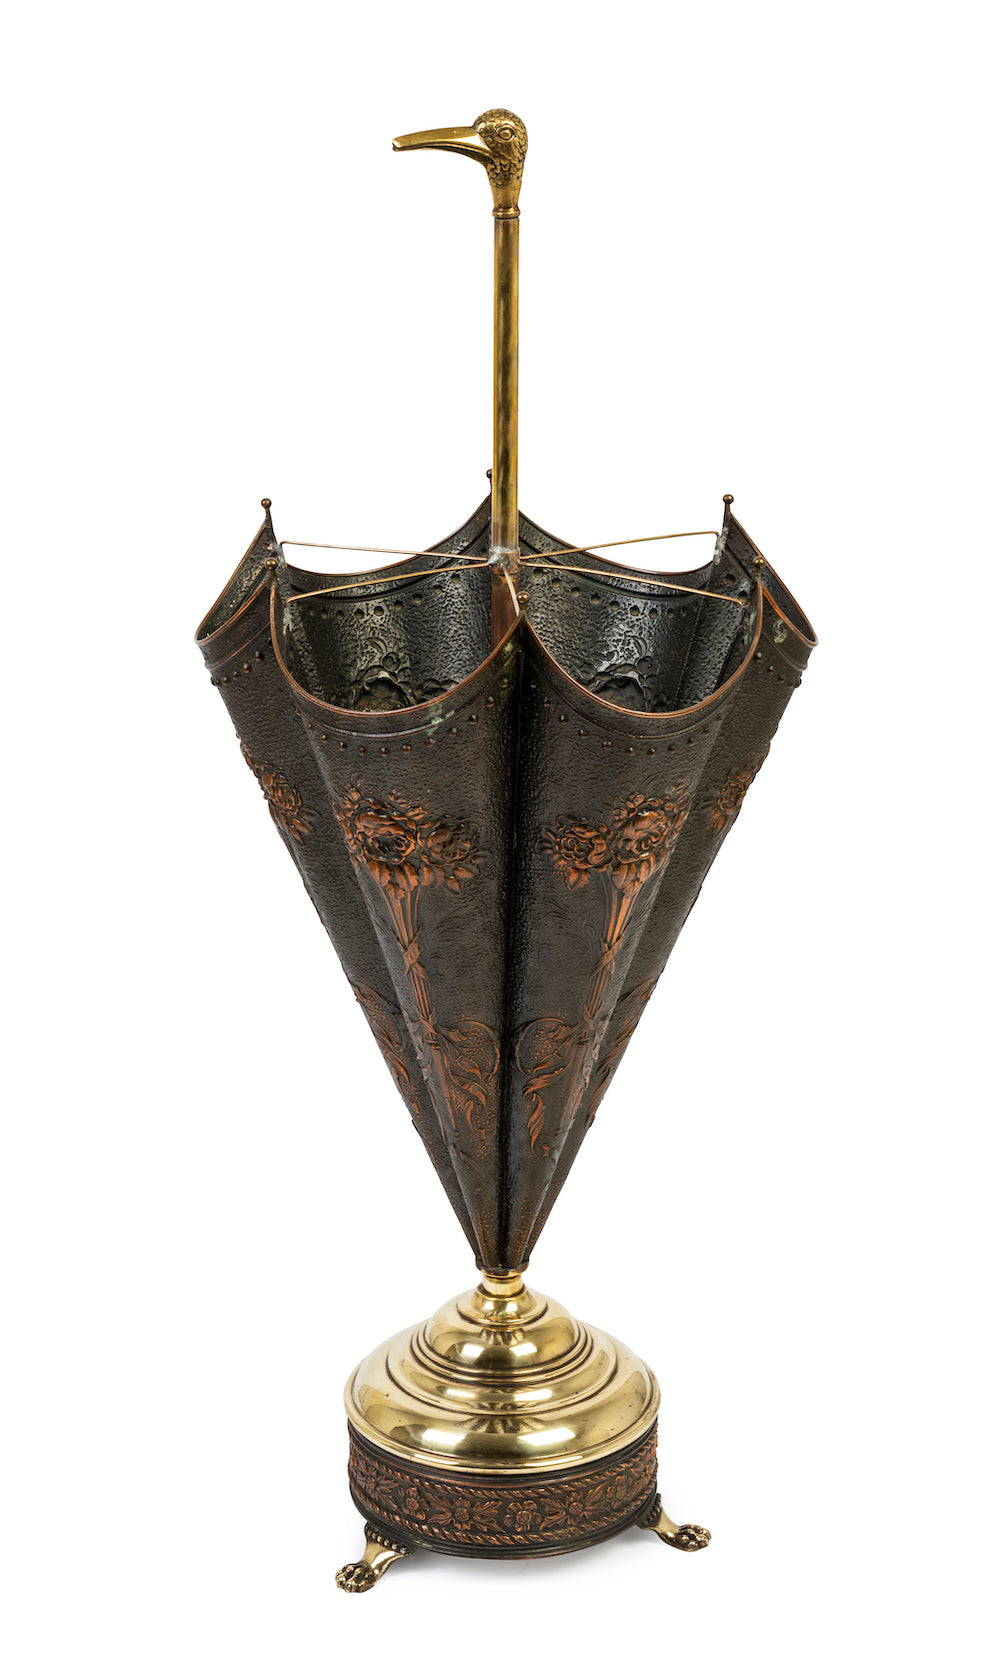 A copper and brass duck's head umbrella stand, French Circa 1920